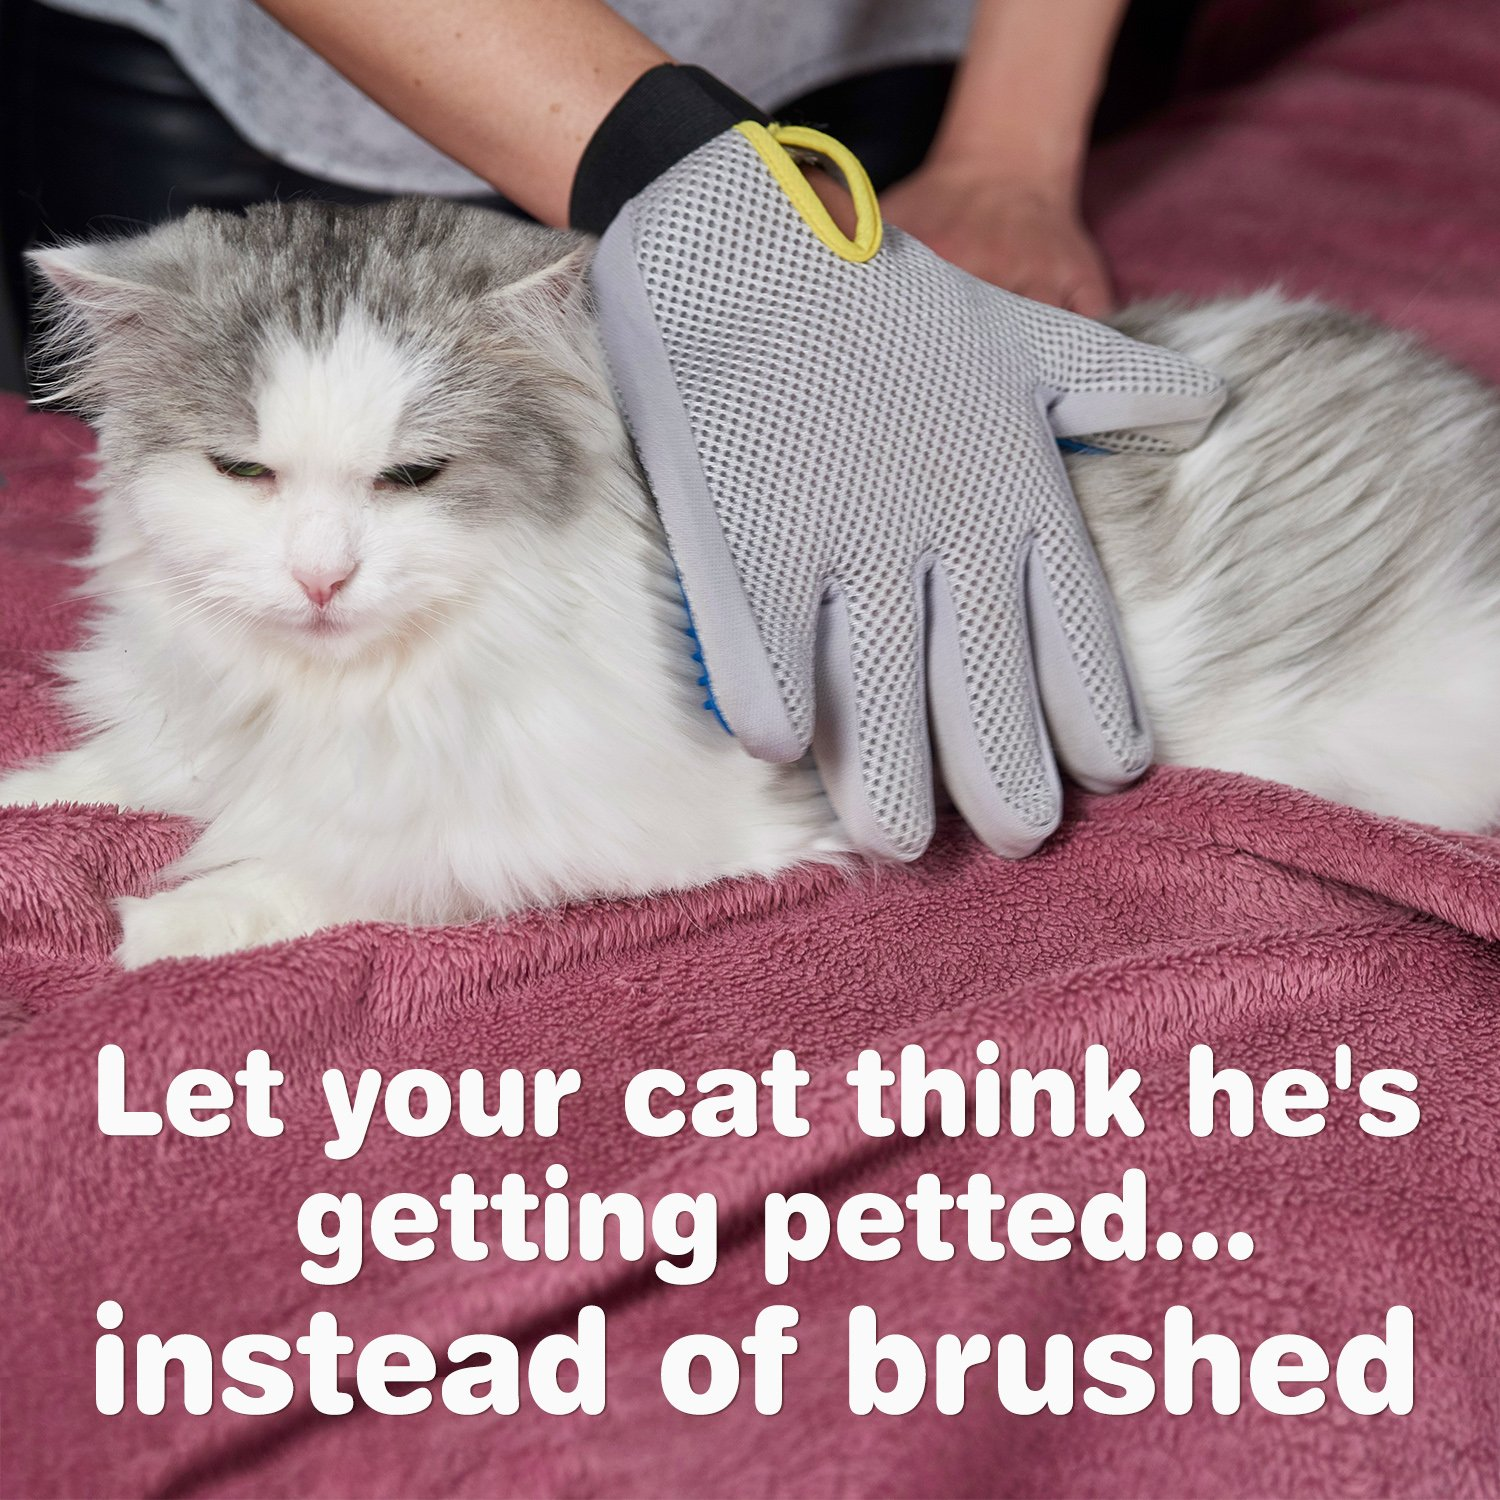 Pet Grooming Glove - Enhanced Five Finger Design - for Cats, Dogs & Horses - Long & Short Fur - Gentle De-Shedding Brush - Your Pet Will Love It (Right) by Pat Your Pet (Image #5)